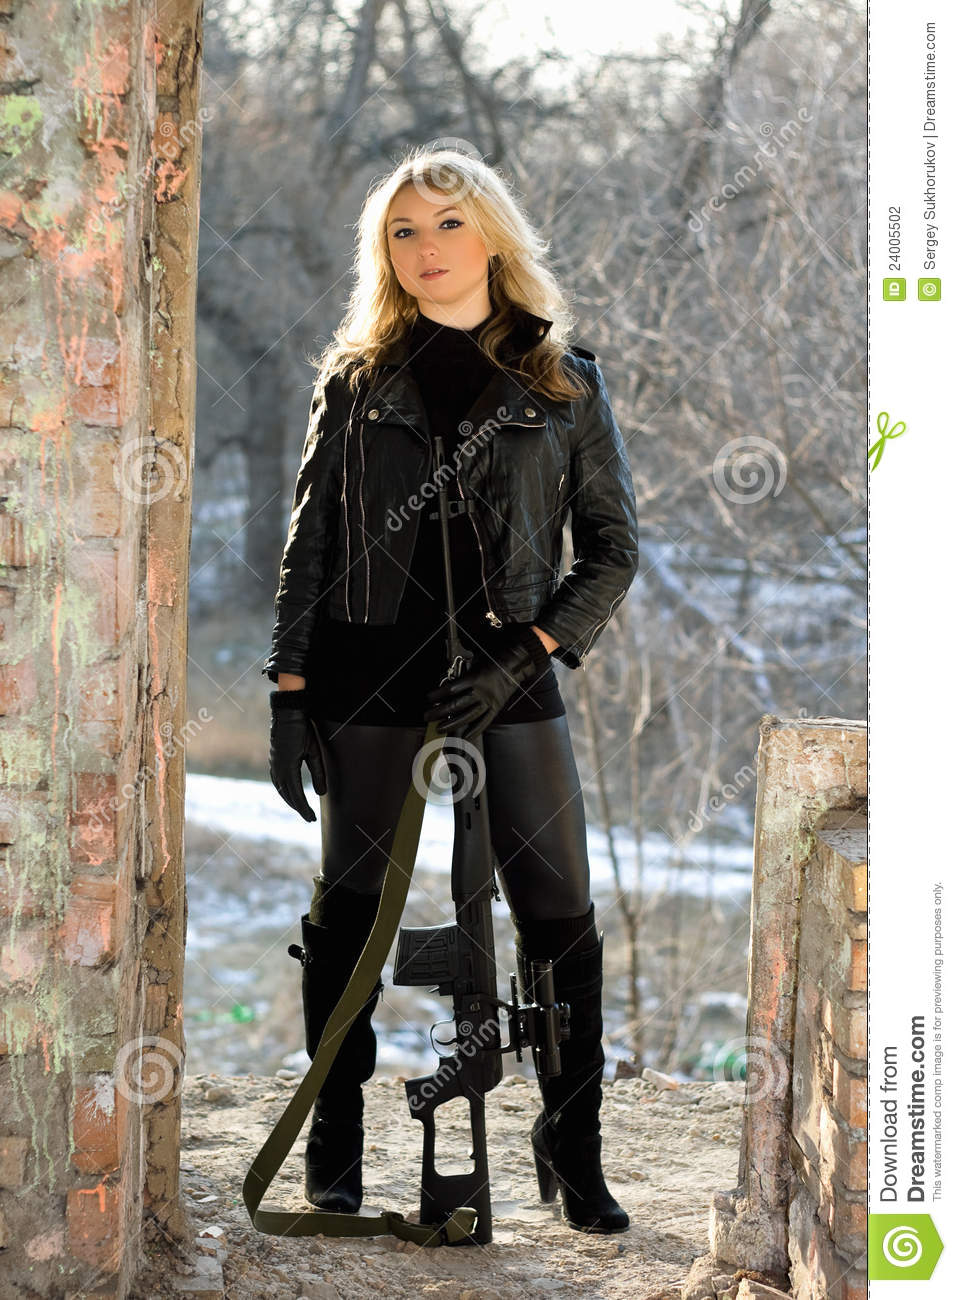 Beautiful Girl With Gun Wallpaper Pretty Woman With A Sniper Rifle Stock Photography Image